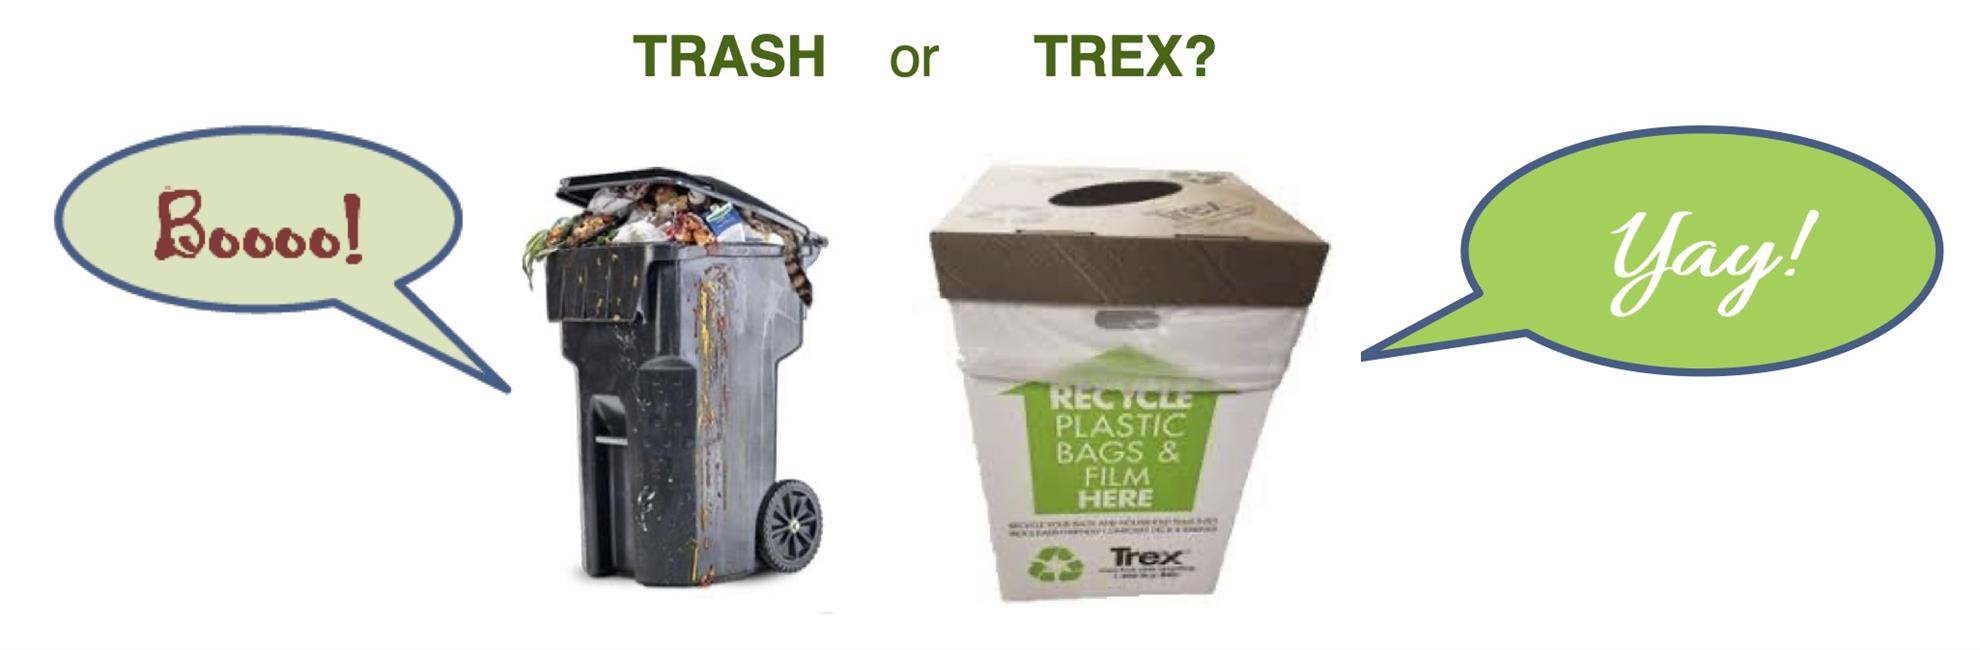 Trash or Trex